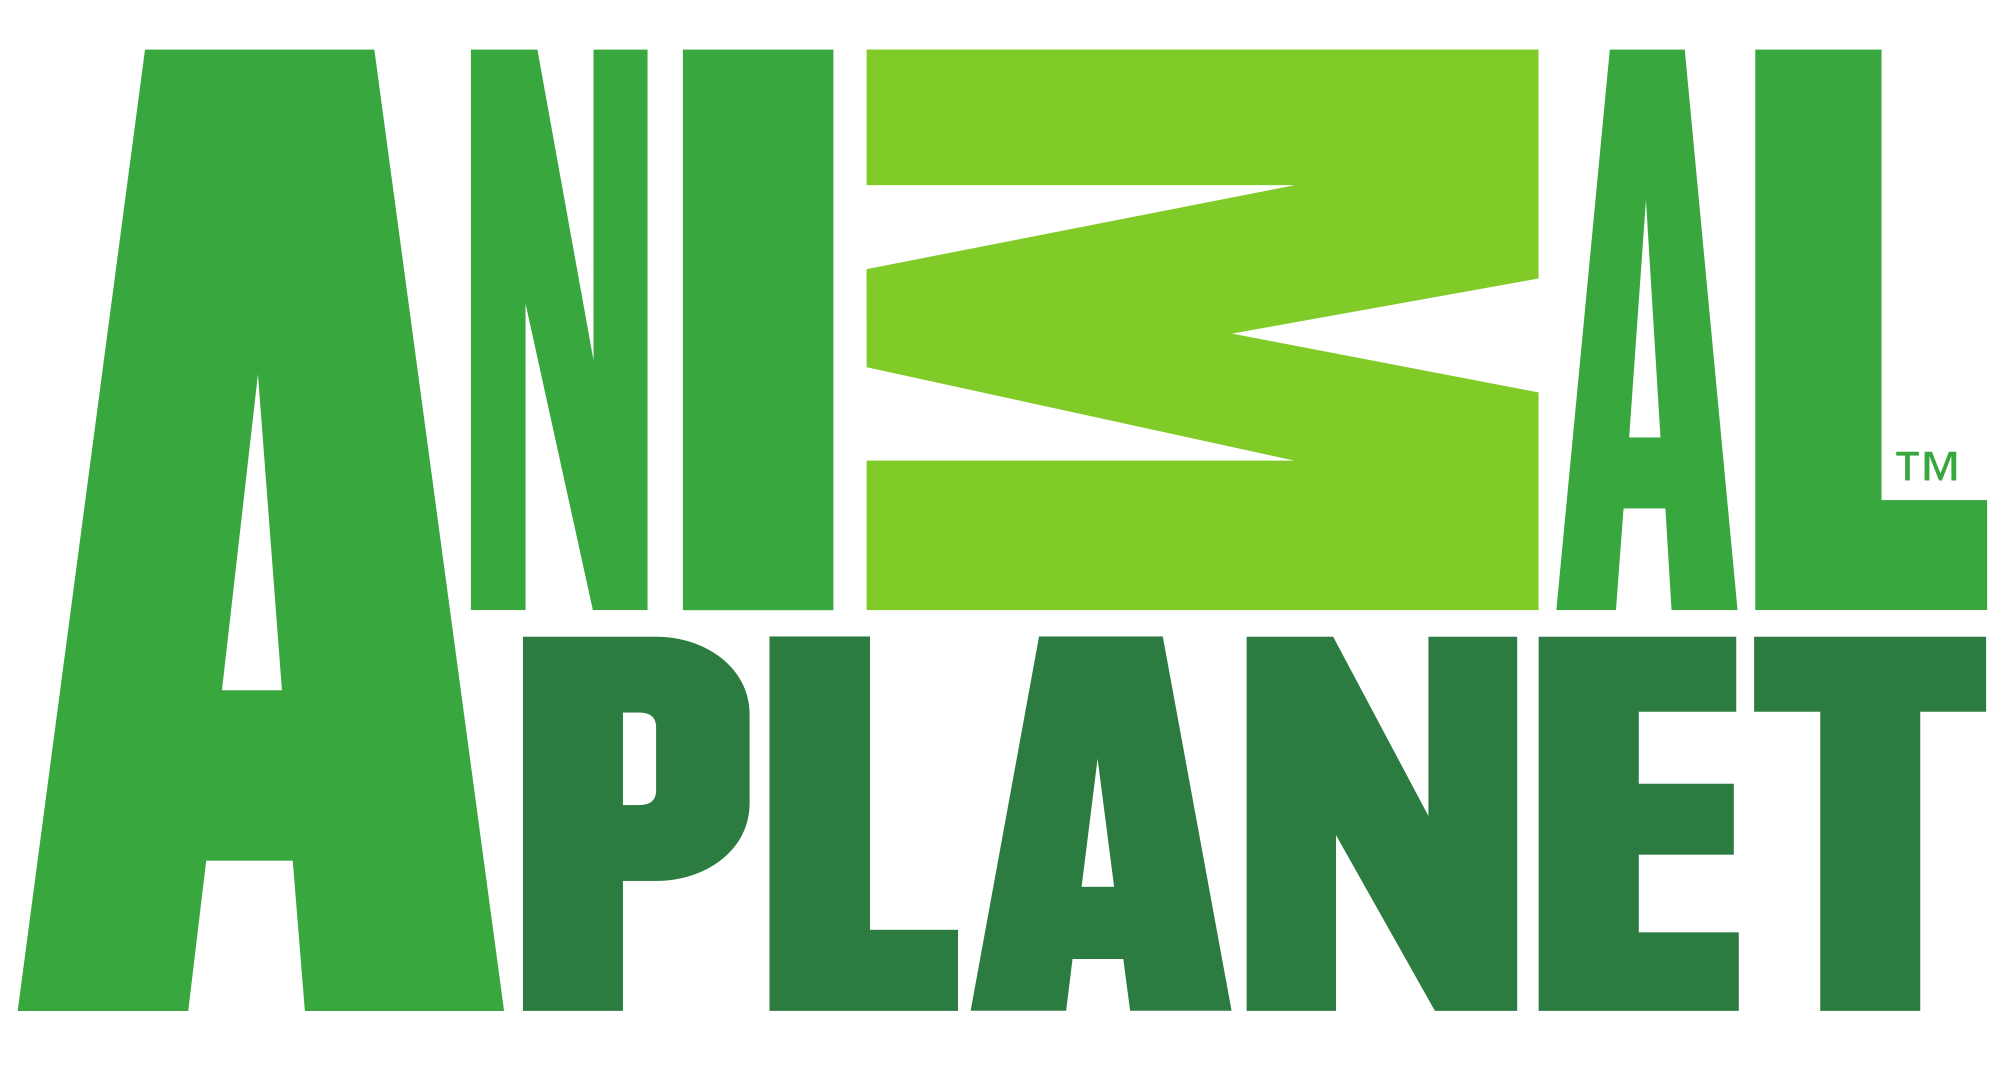 Animal planet channel logo png. Image my cartoon network